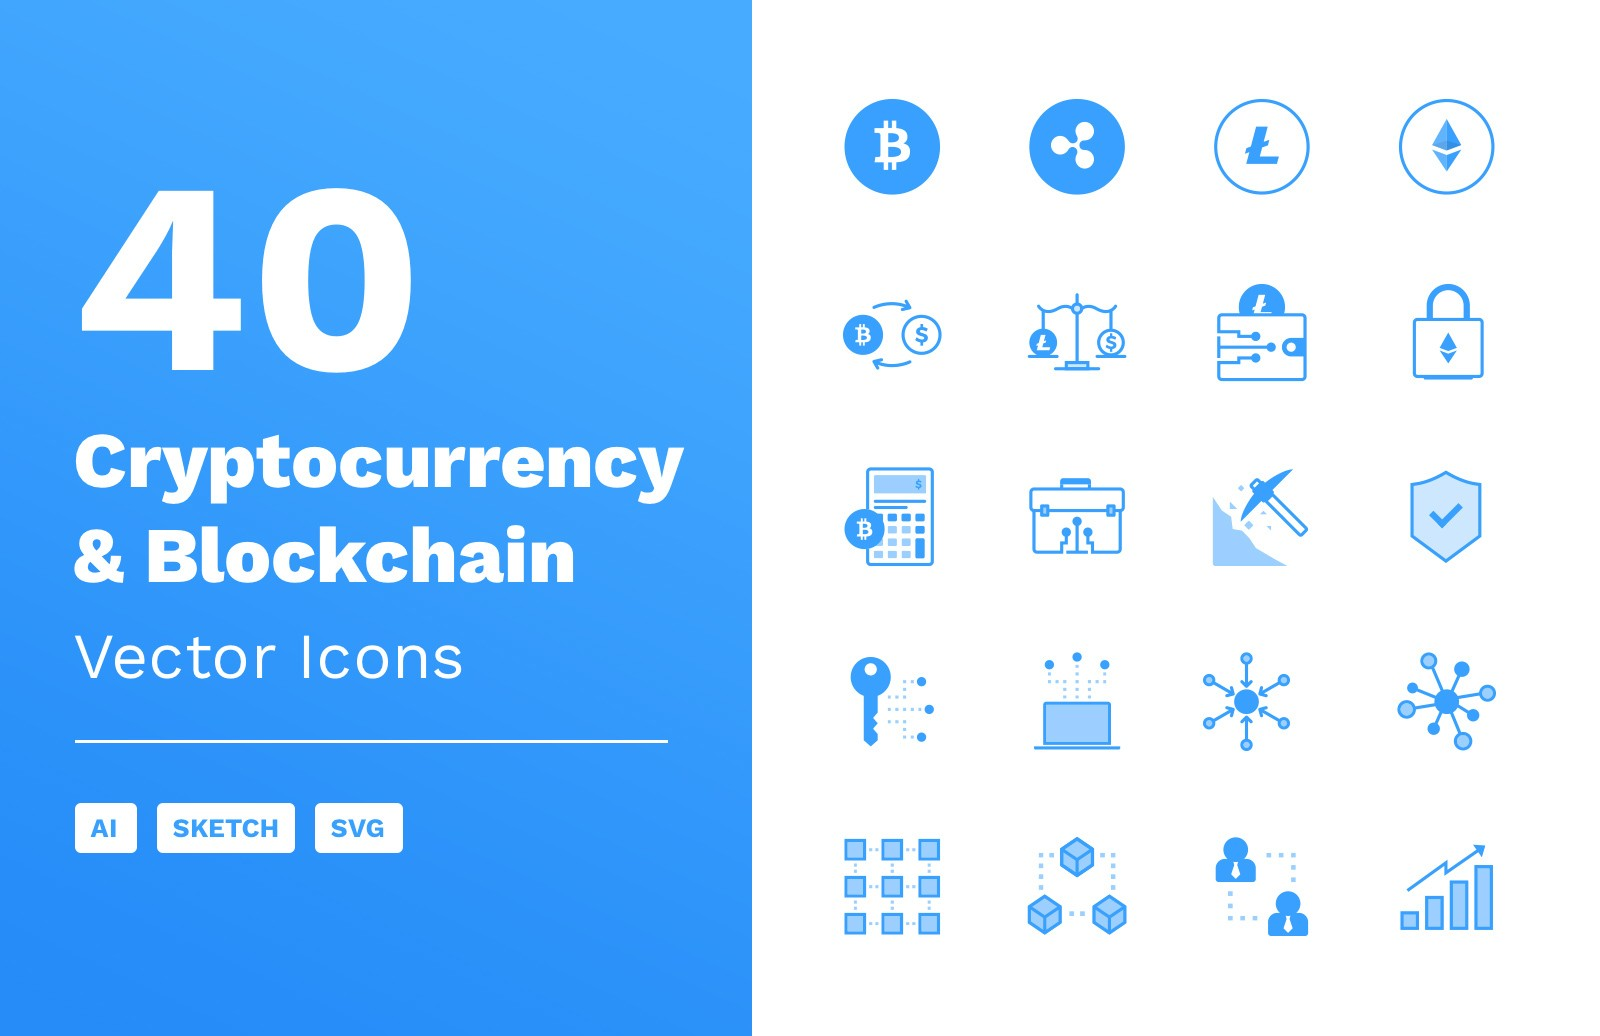 Cryptocurrency Vetor Icons Preview 1A